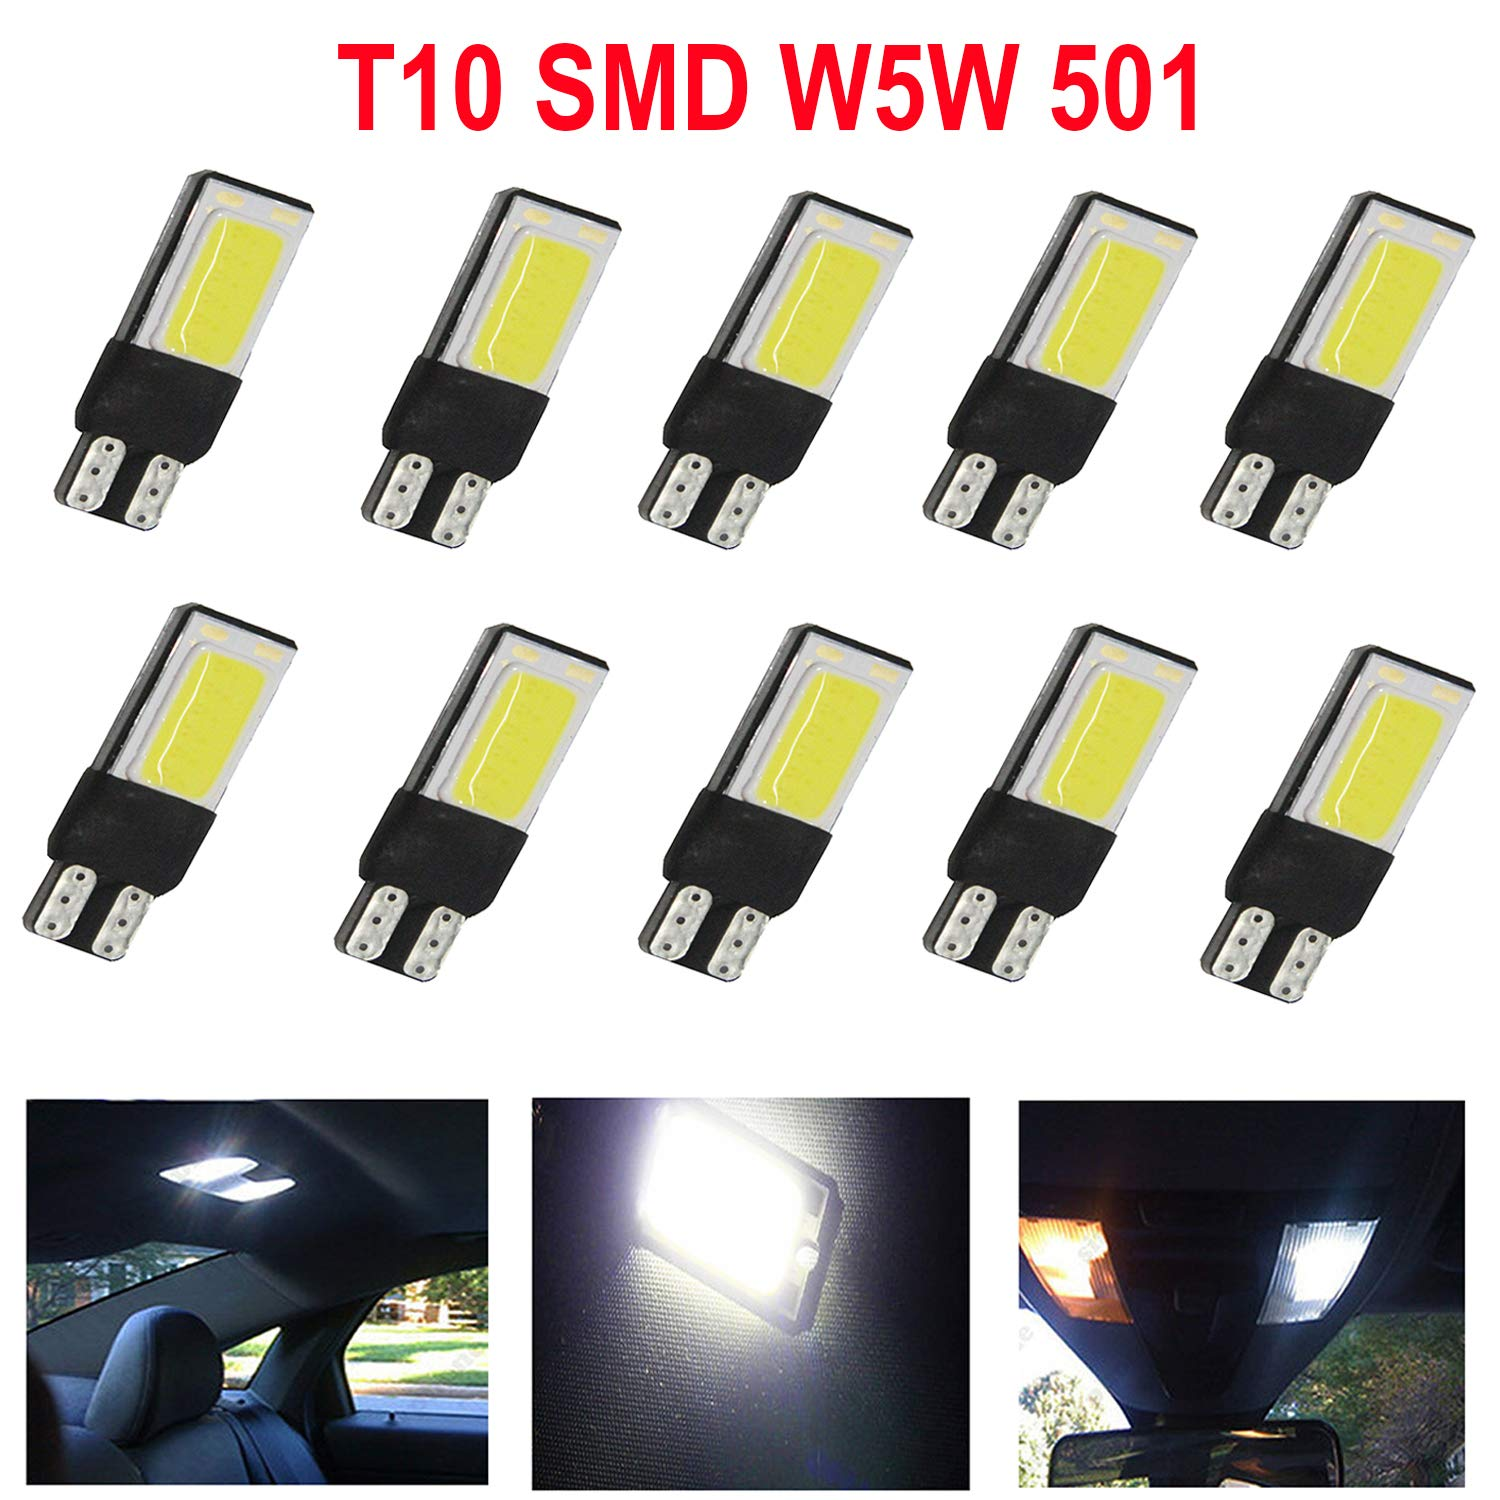 High Key 8x T10 501 Car Bulbs Led Error Free Canbus SMD Cob White Ice Blue W5W Side Light Replacement for Car Interior Dome Map Door Dashboard Trunk Courtesy License Plate Light 8x, White